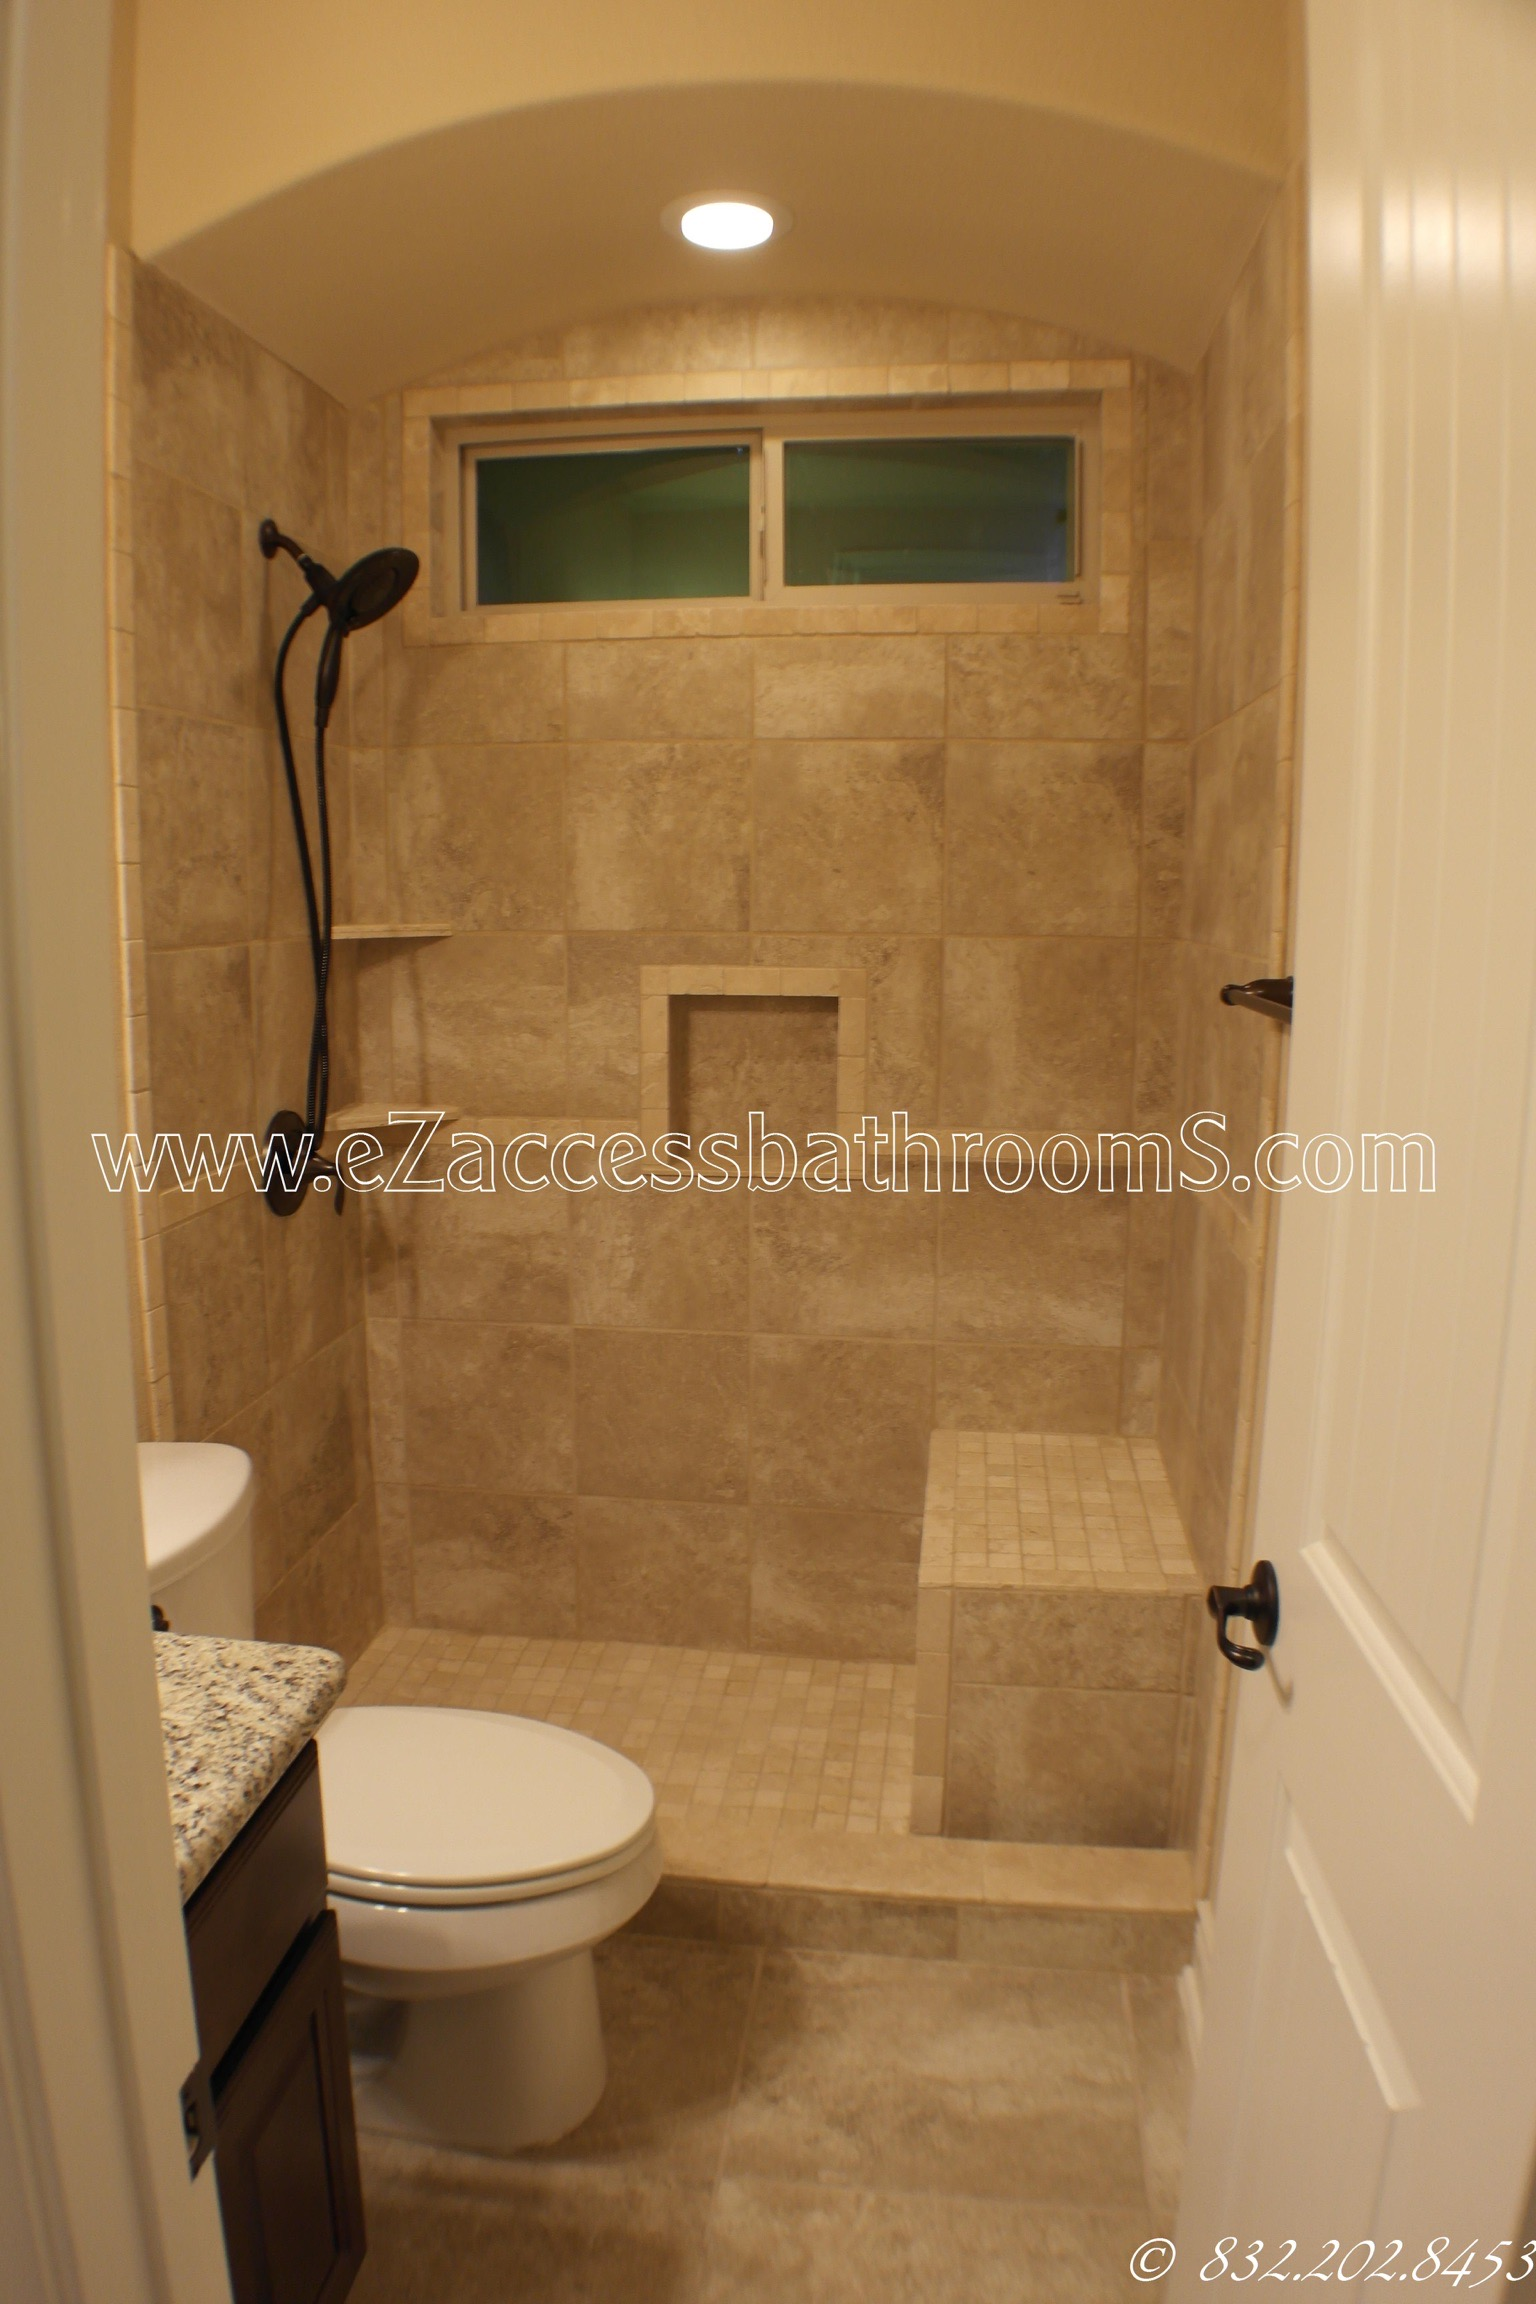 FROM A STANDARD TUB TO SHOWER CONVERSION